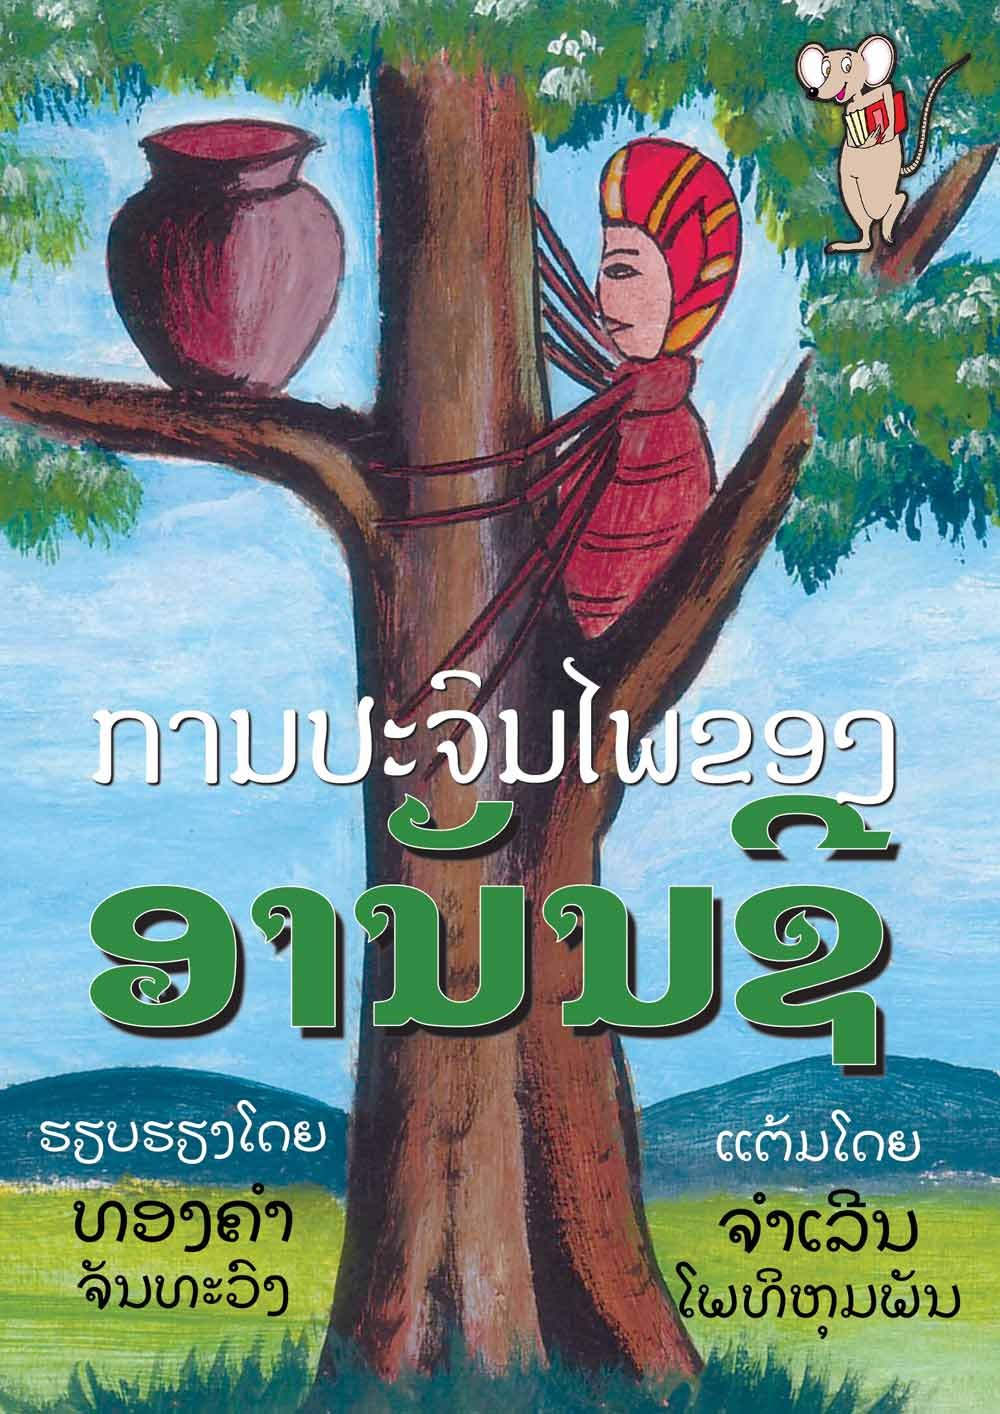 The Adventures of Anansi large book cover, published in Lao language